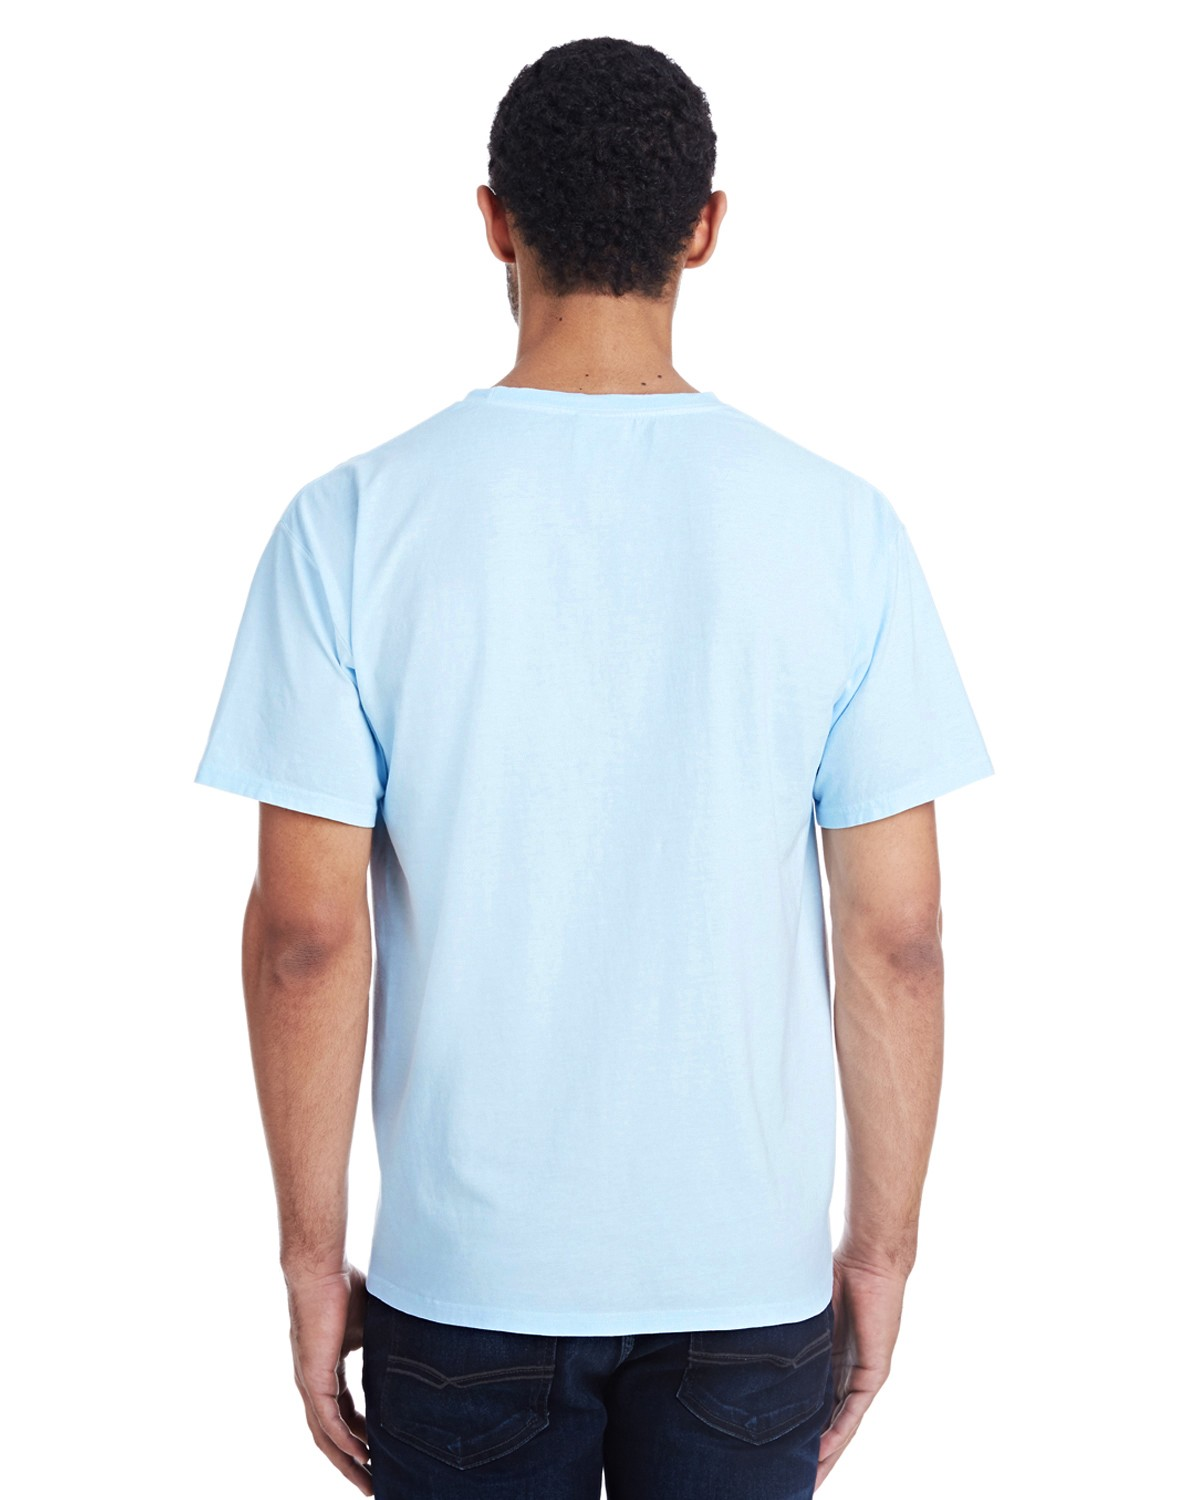 GDH100 ComfortWash by Hanes SOOTHING BLUE